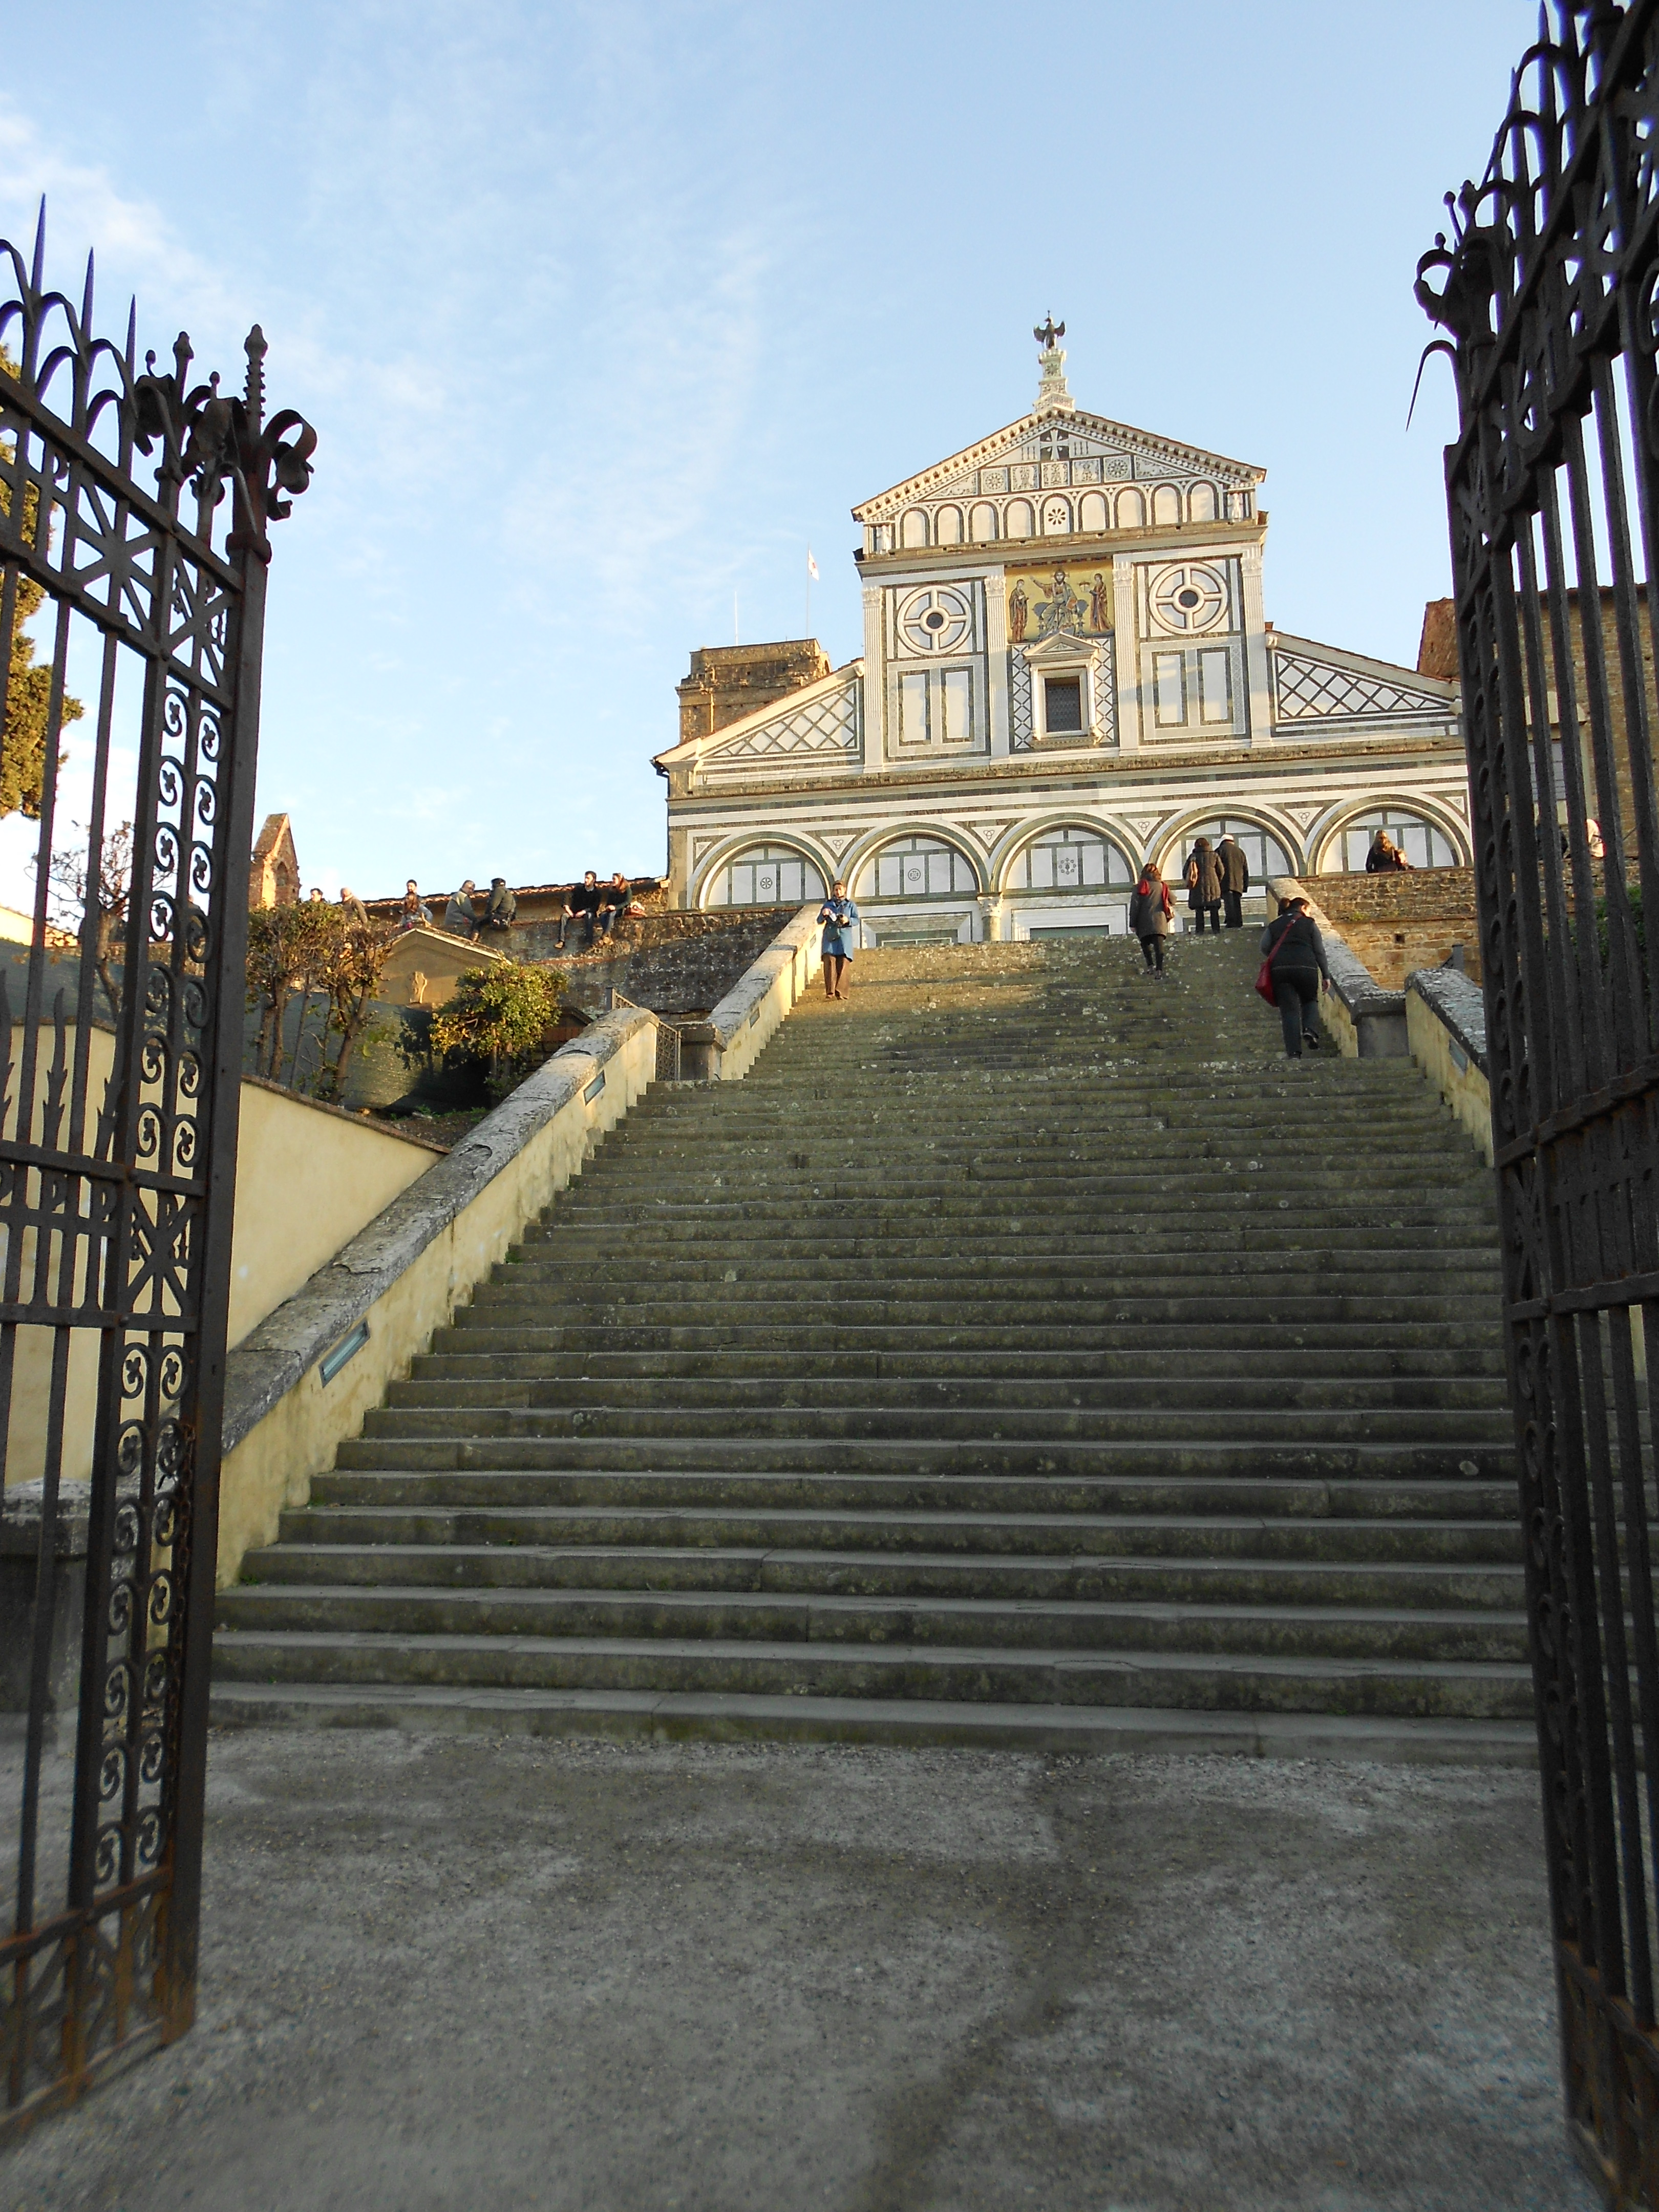 The main entrance to the church